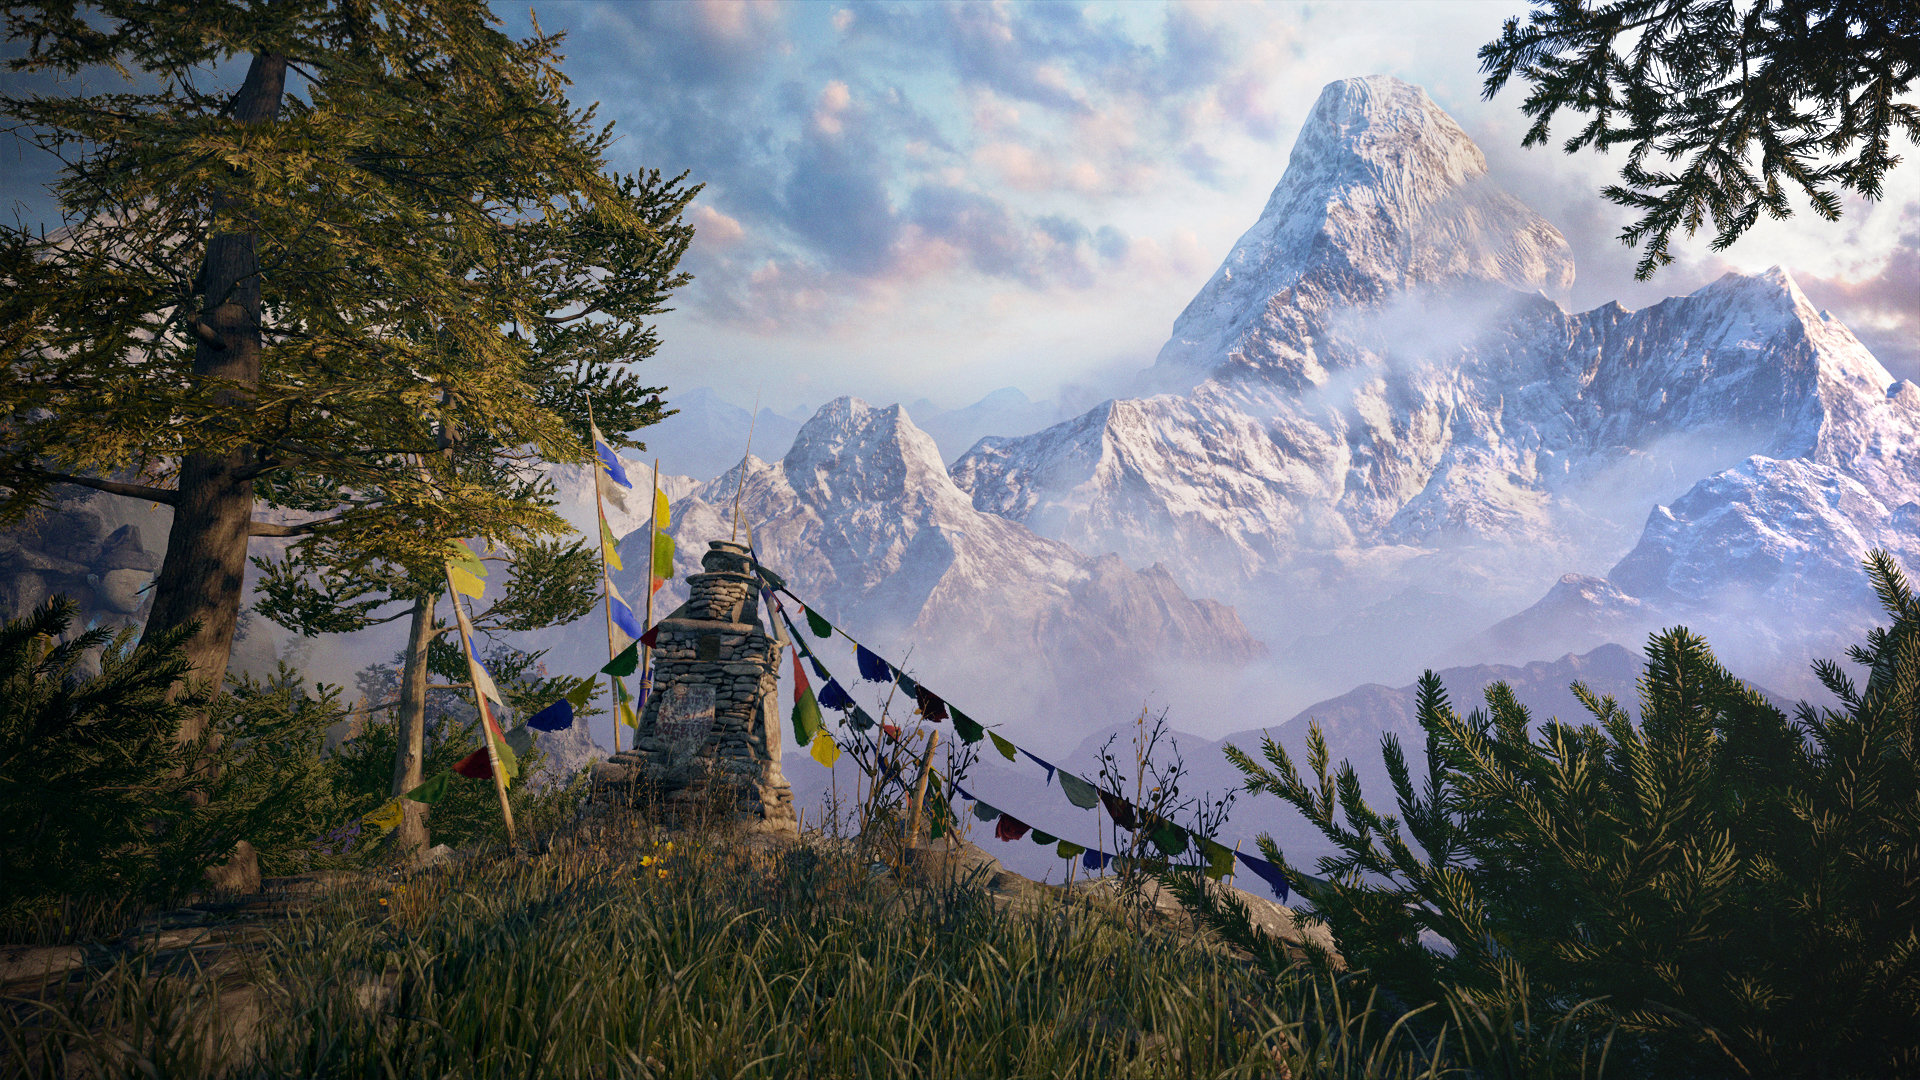 Free Download Far Cry 4 Wallpaper Id 10734 Full Hd 1080p For Computer